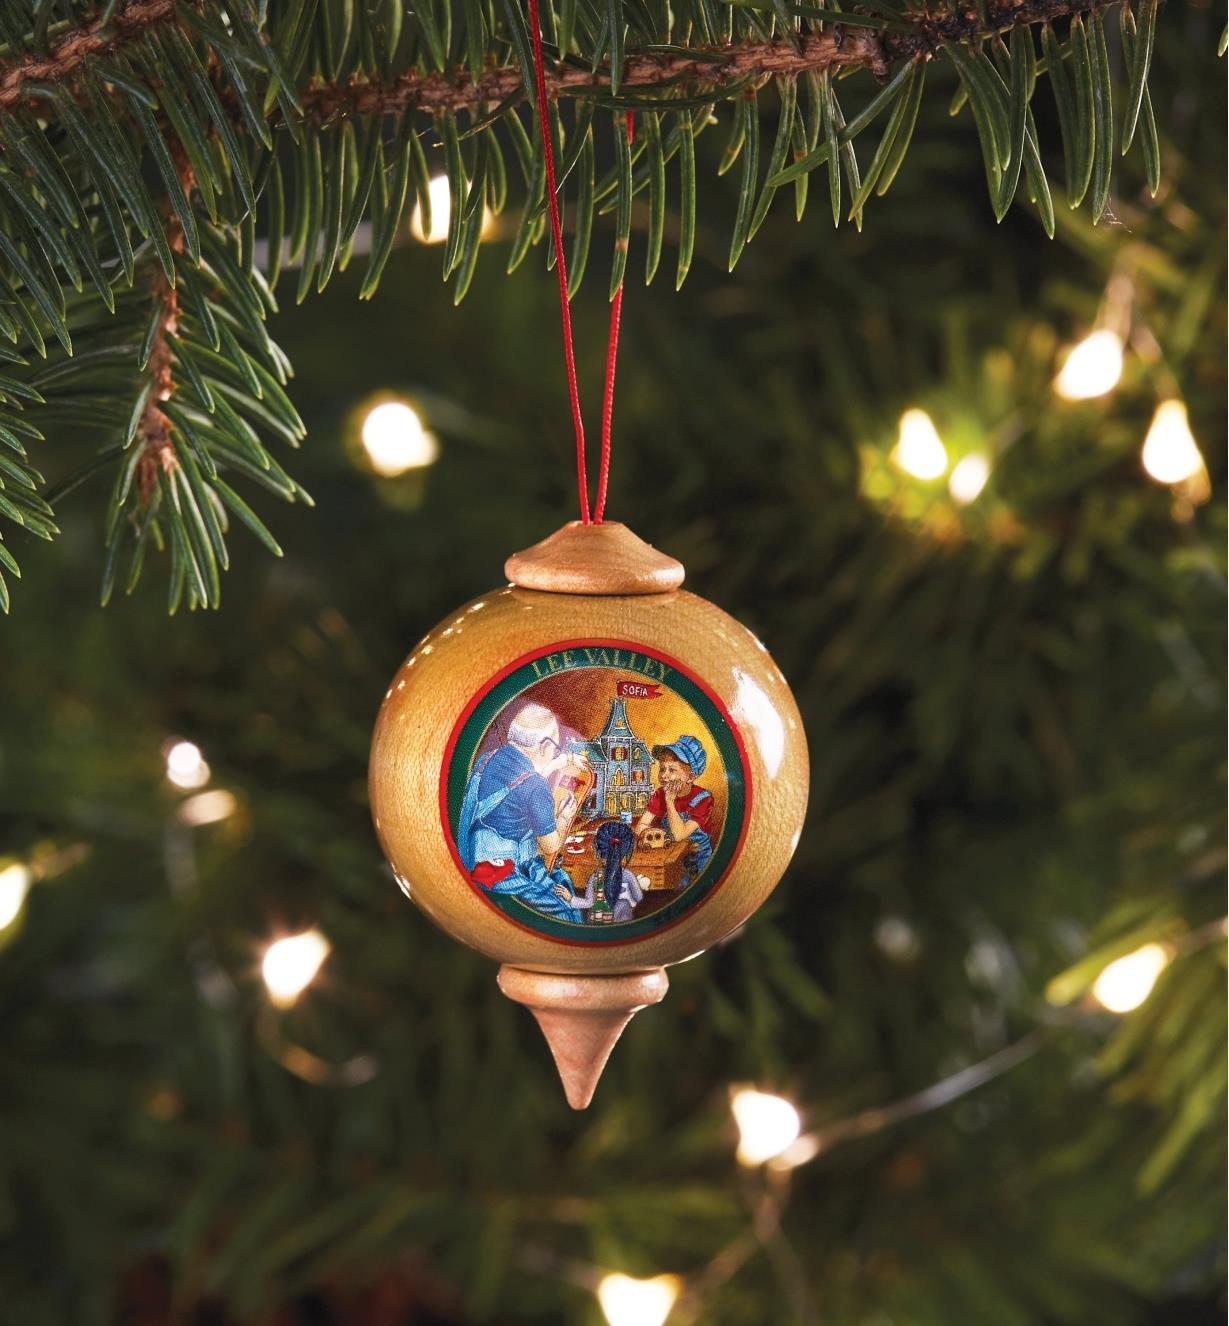 The workshop ornament hanging on a Christmas tree